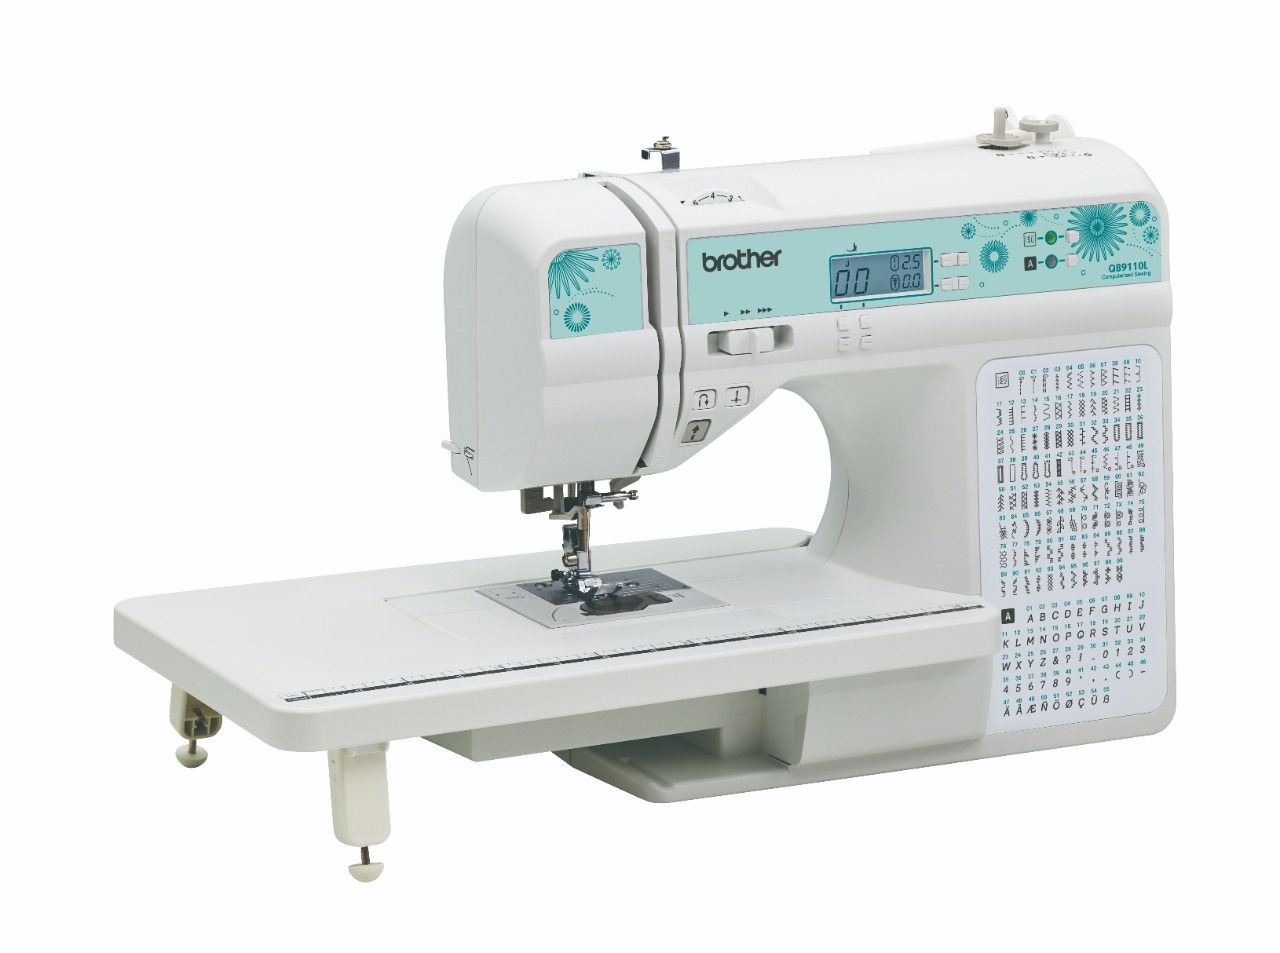 Máquina de Costura para Quilting e Patchwork Brother QB9110L